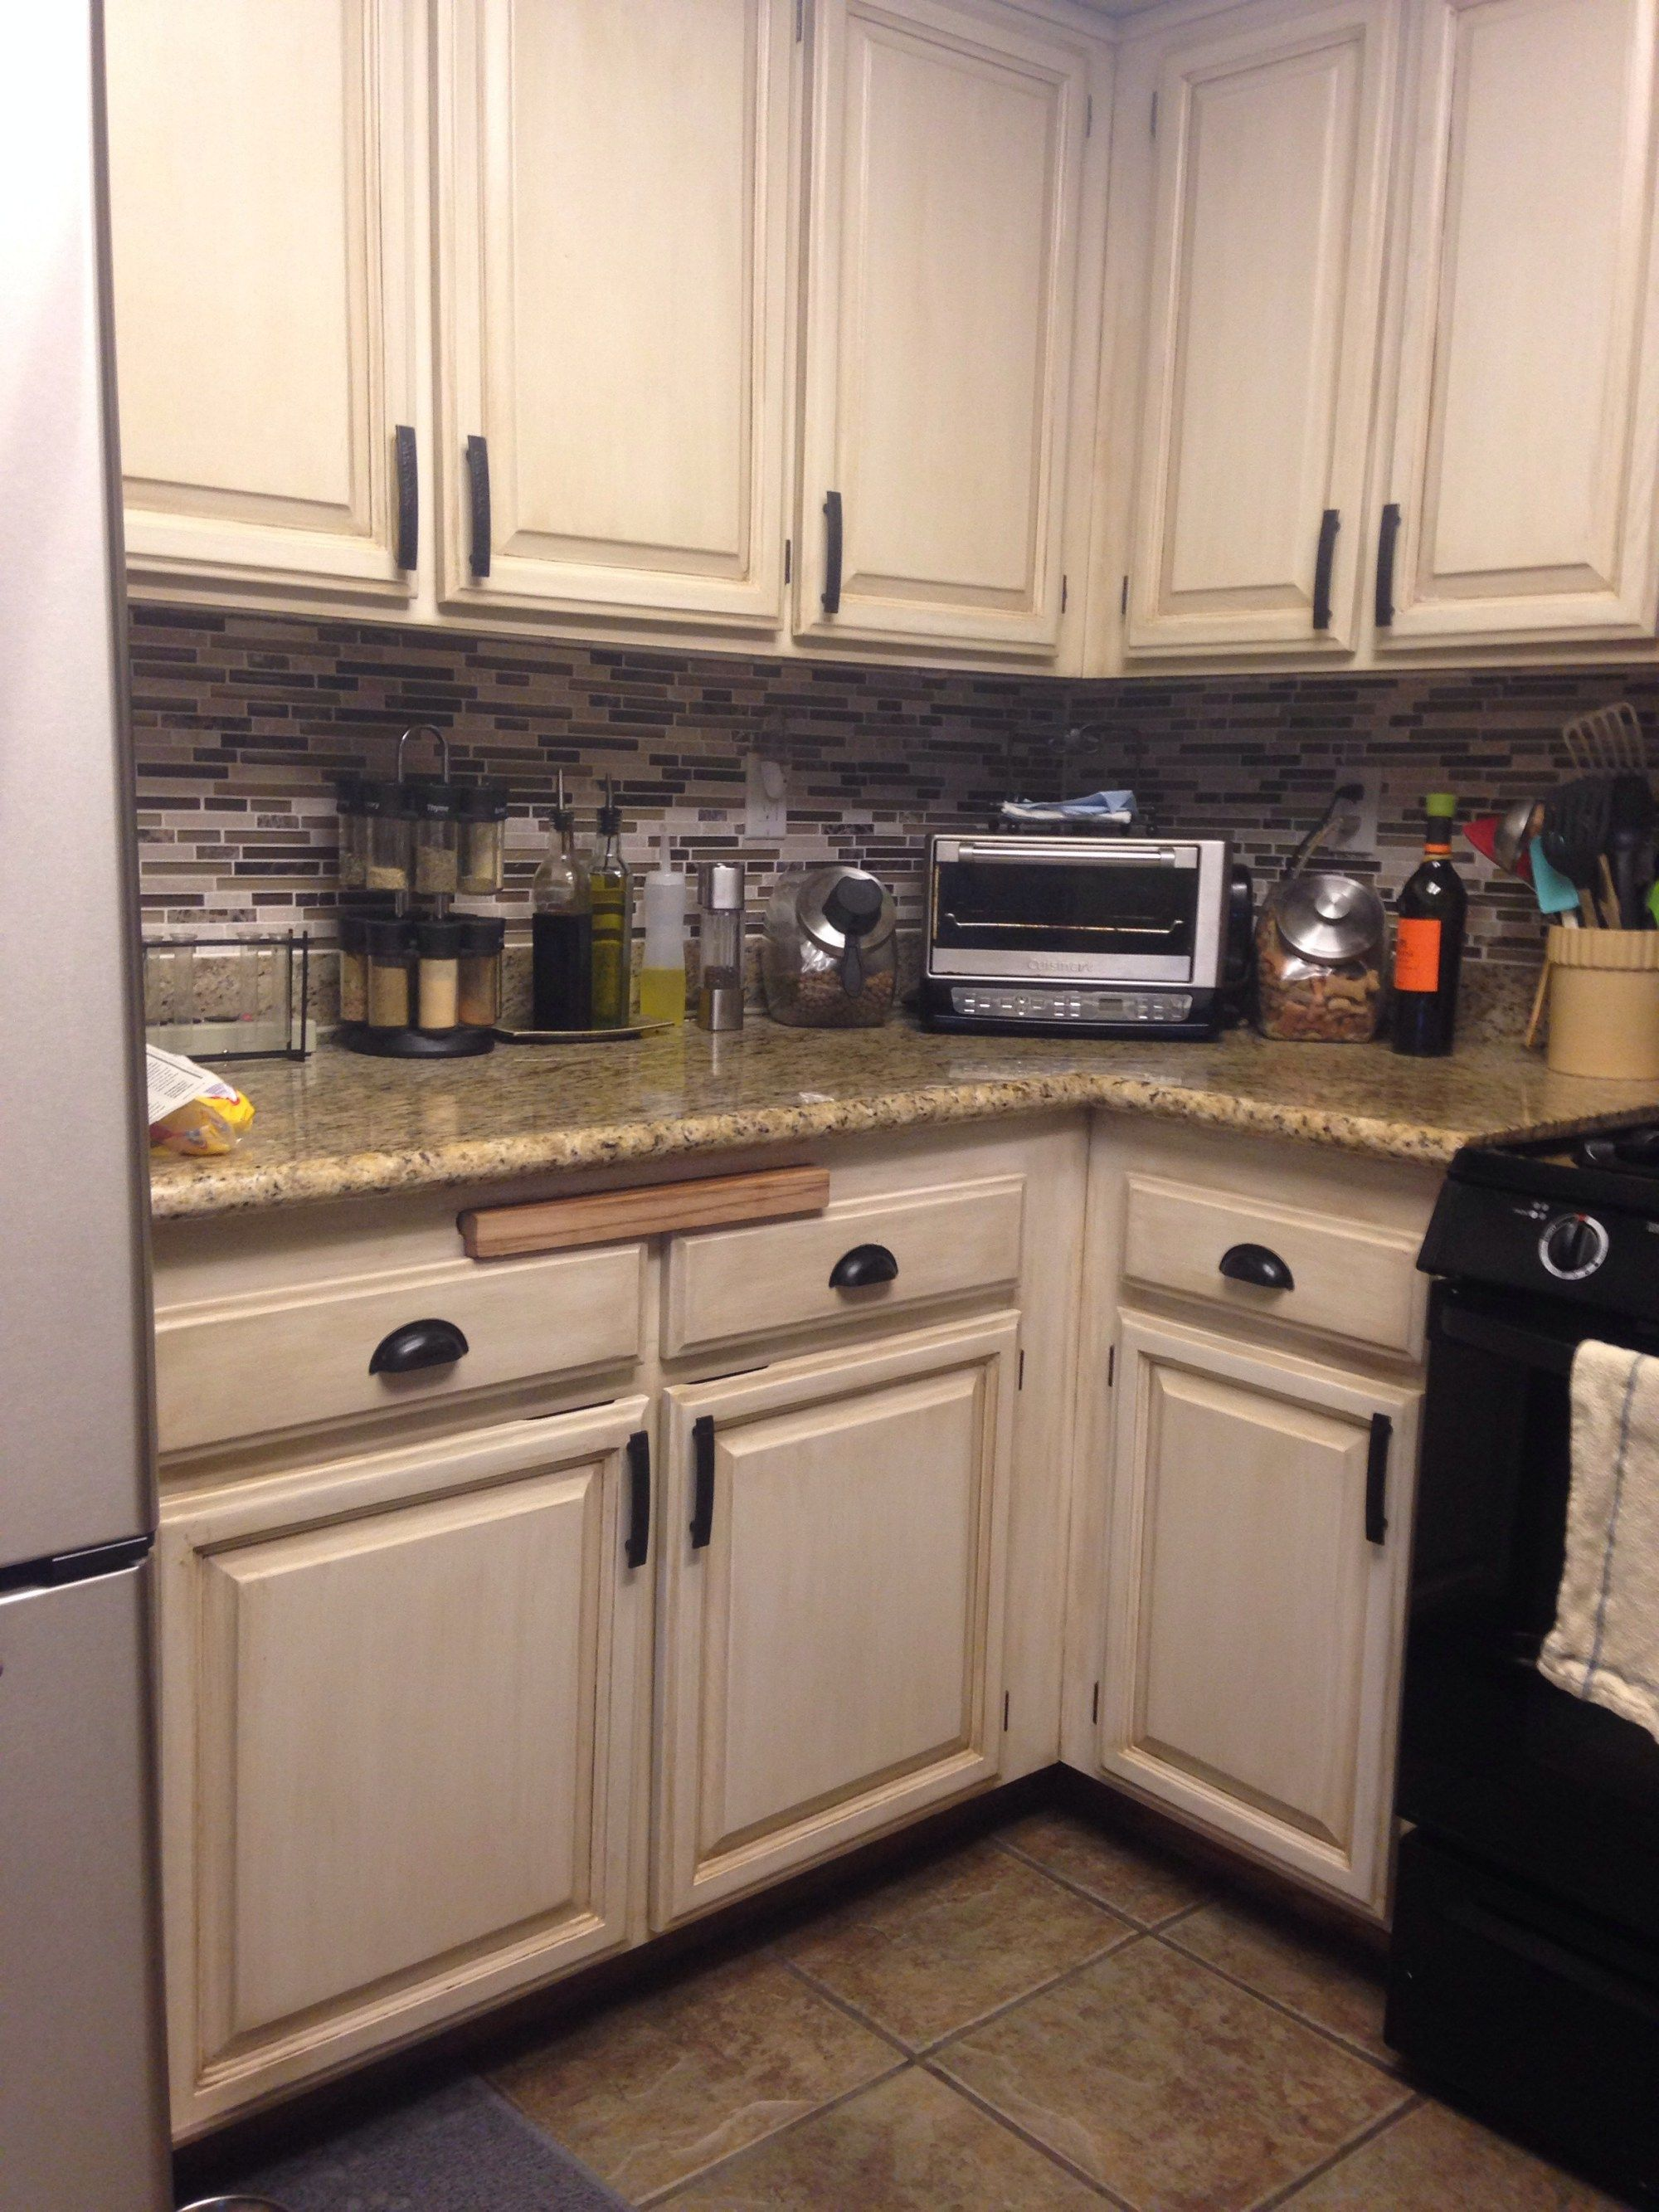 Exceptionnel Tami Review Of Painted Cabinets Using Rustoleum Transformations Kit